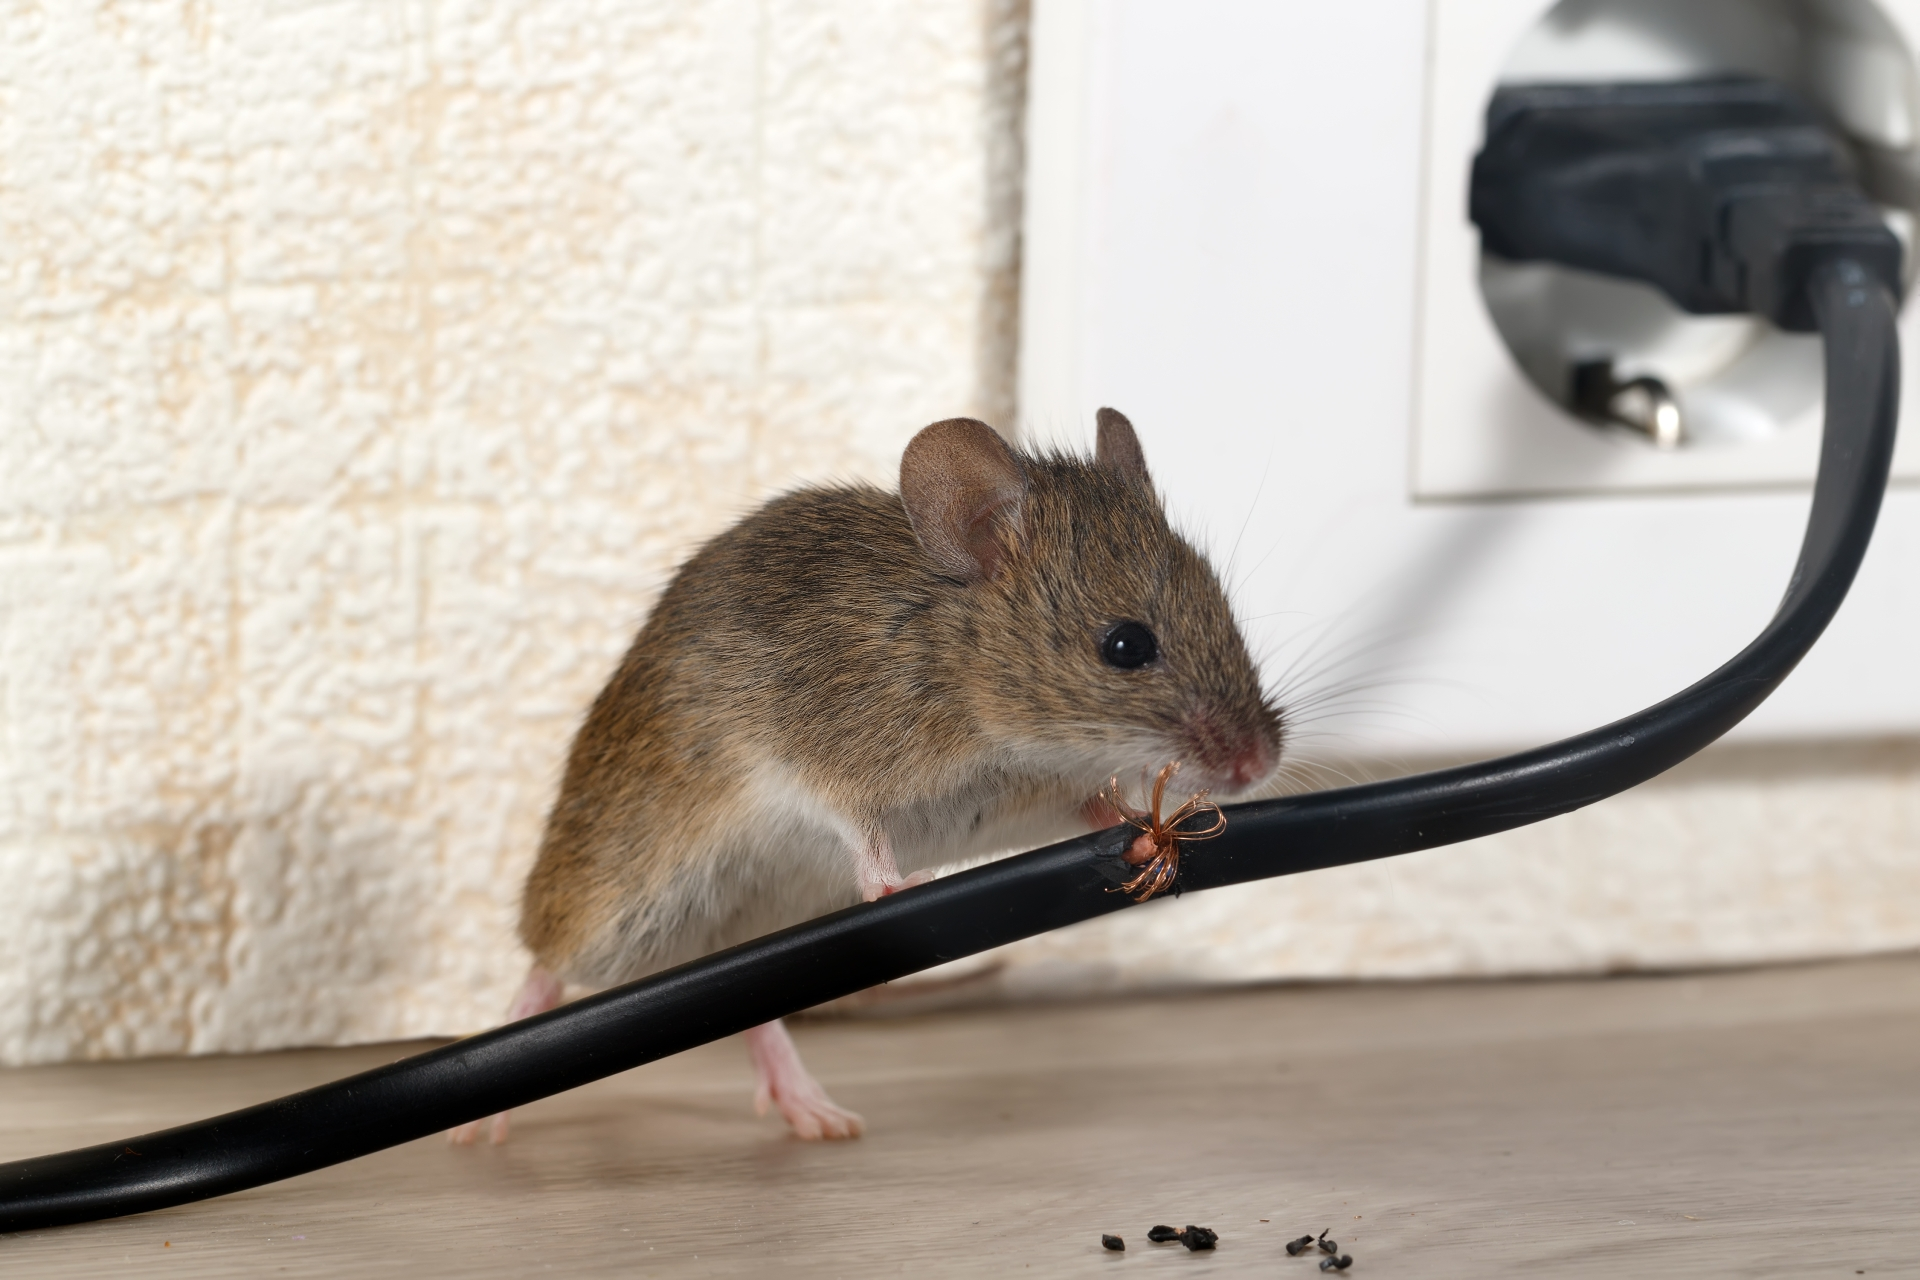 Mice Infestation, Pest Control in Mayfair, Marylebone, W1. Call Now 020 8166 9746